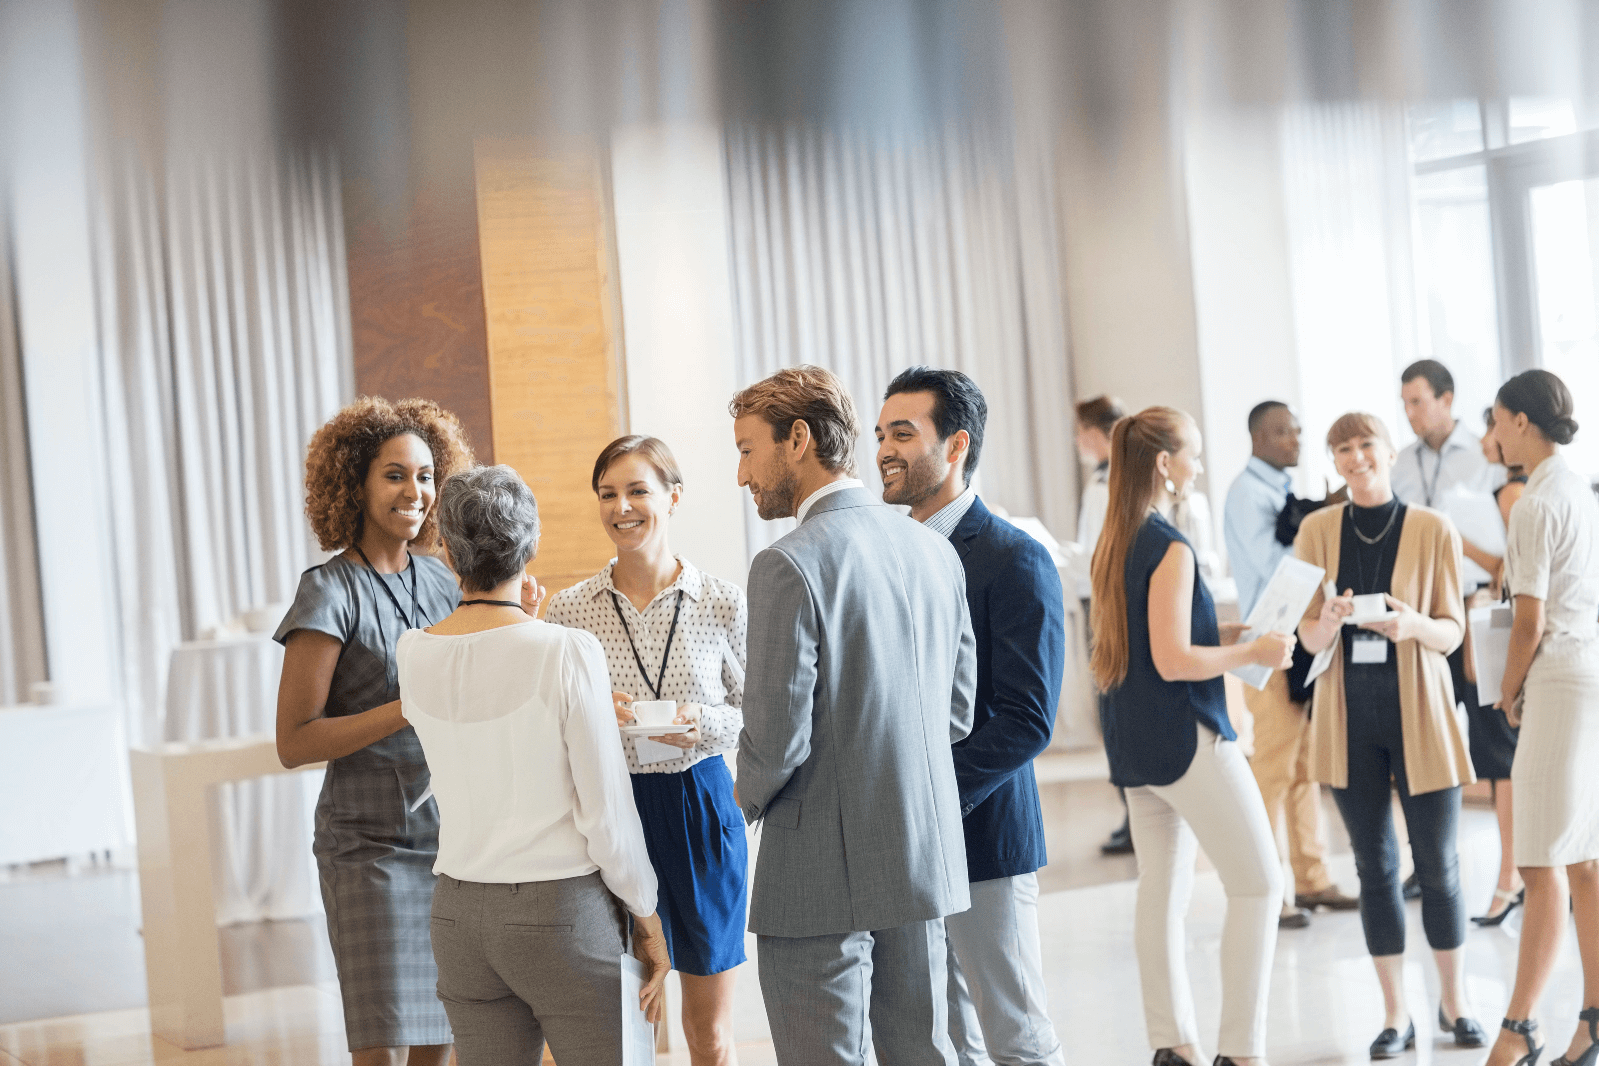 Image of professional employees, dressed in business casual, conversing in groups